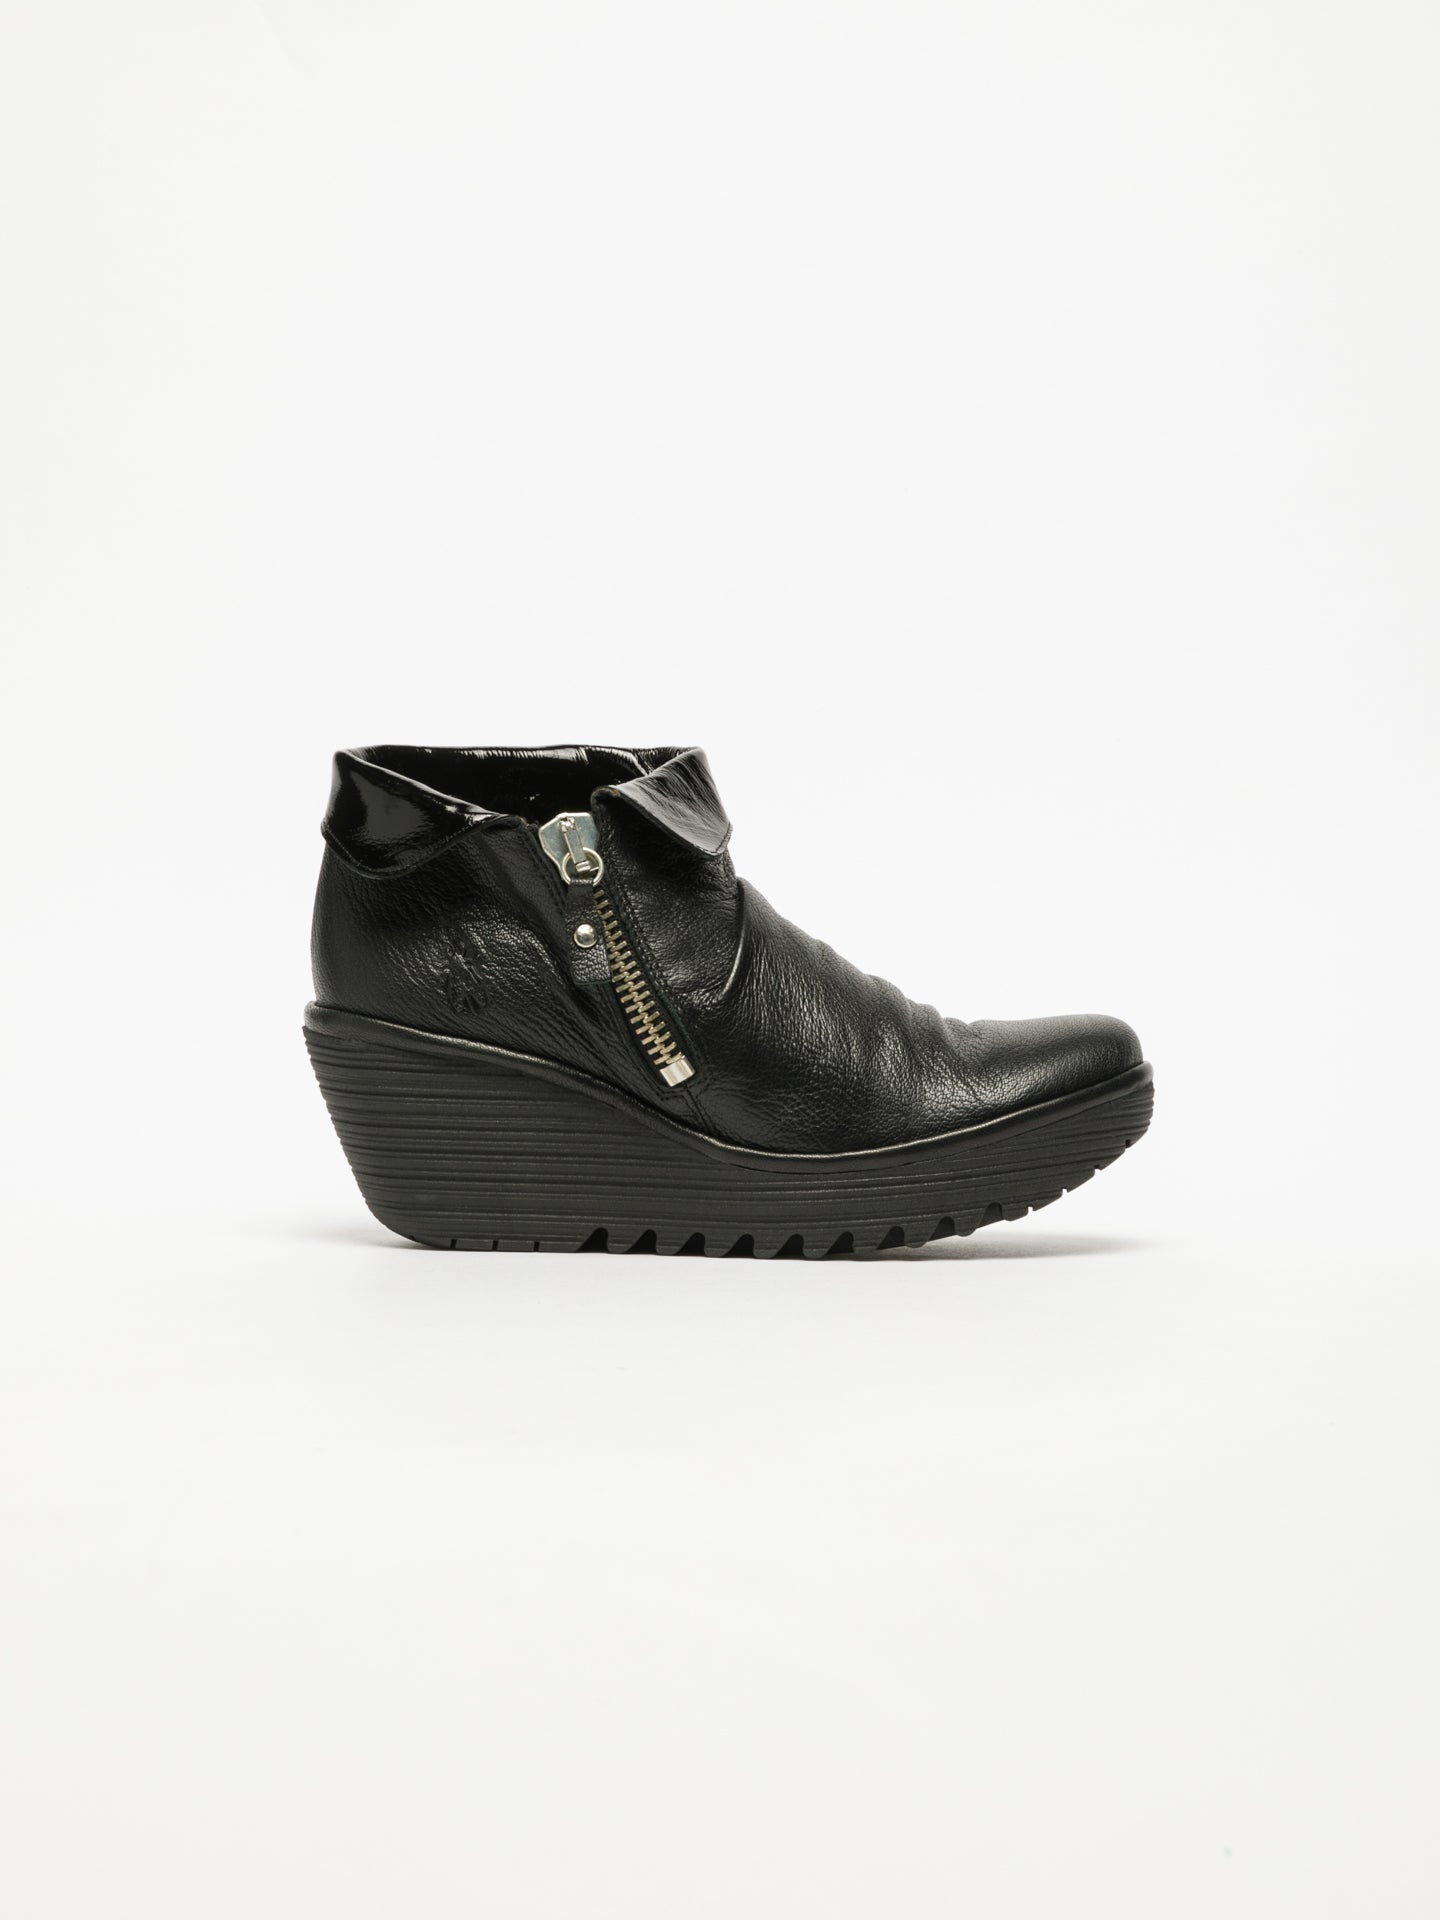 Fly London Carbon Black Zip Up Ankle Boots